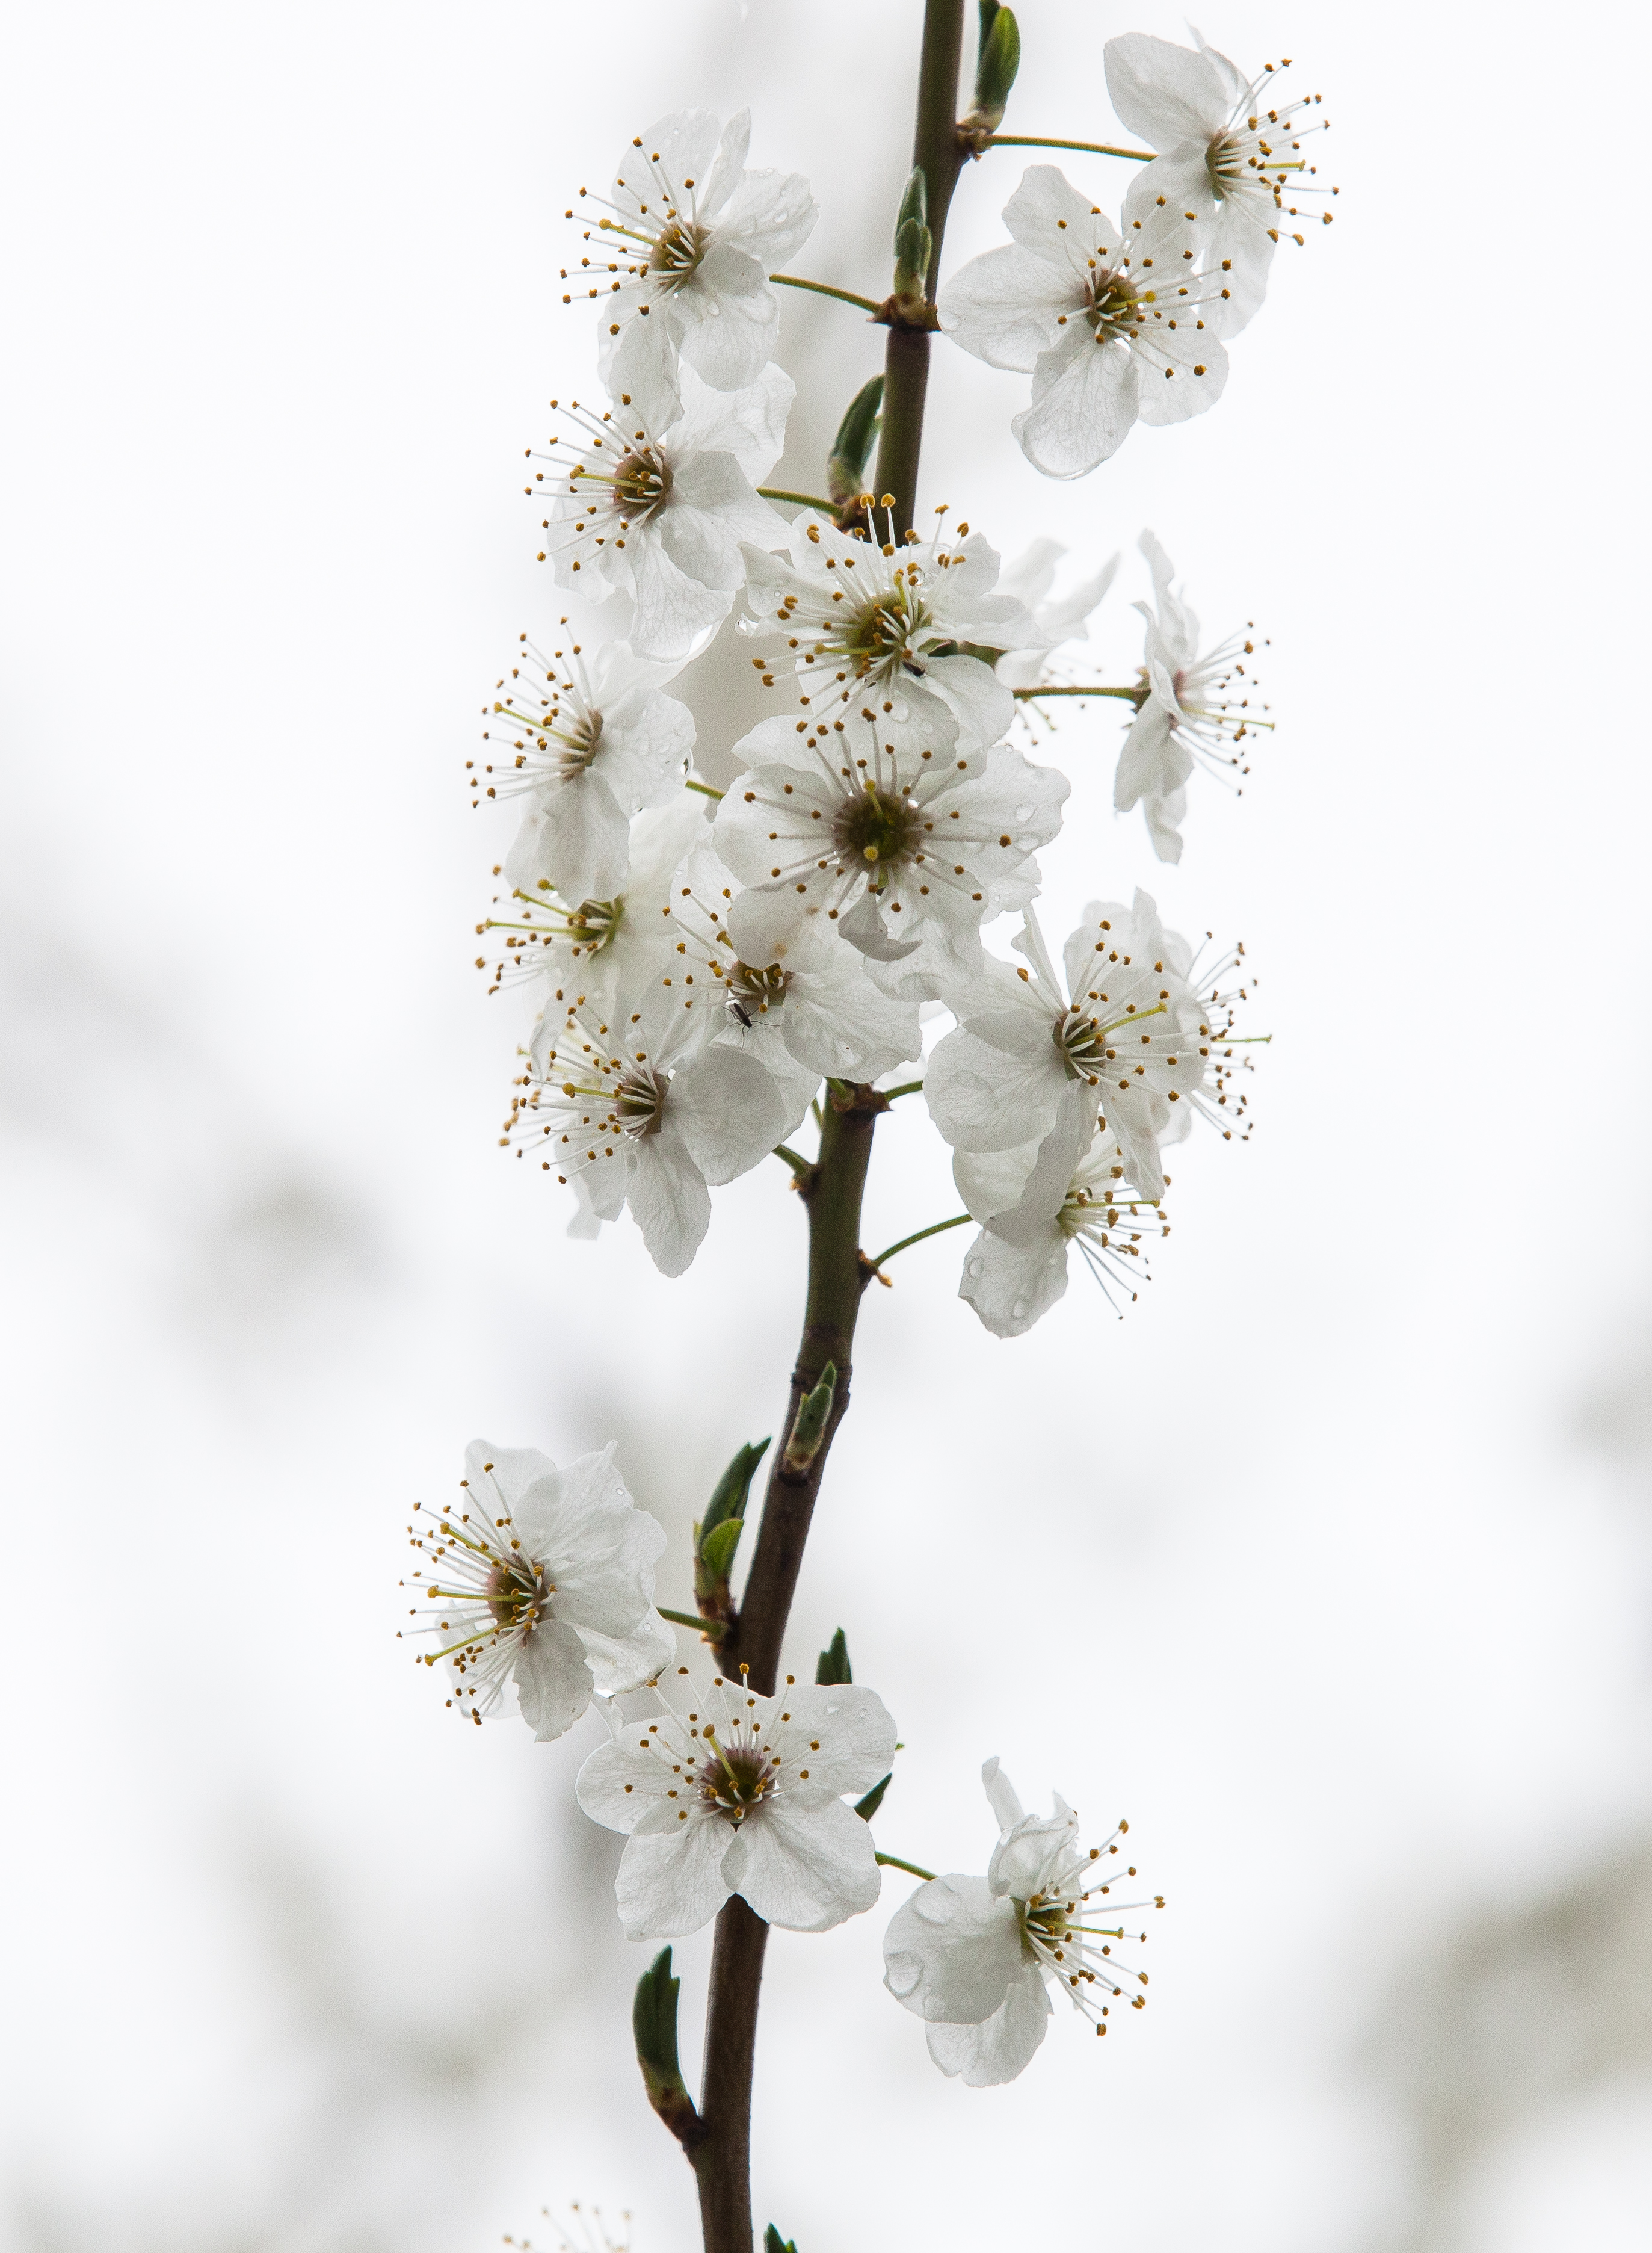 white blossom photographed in April 2014, photo 2/3